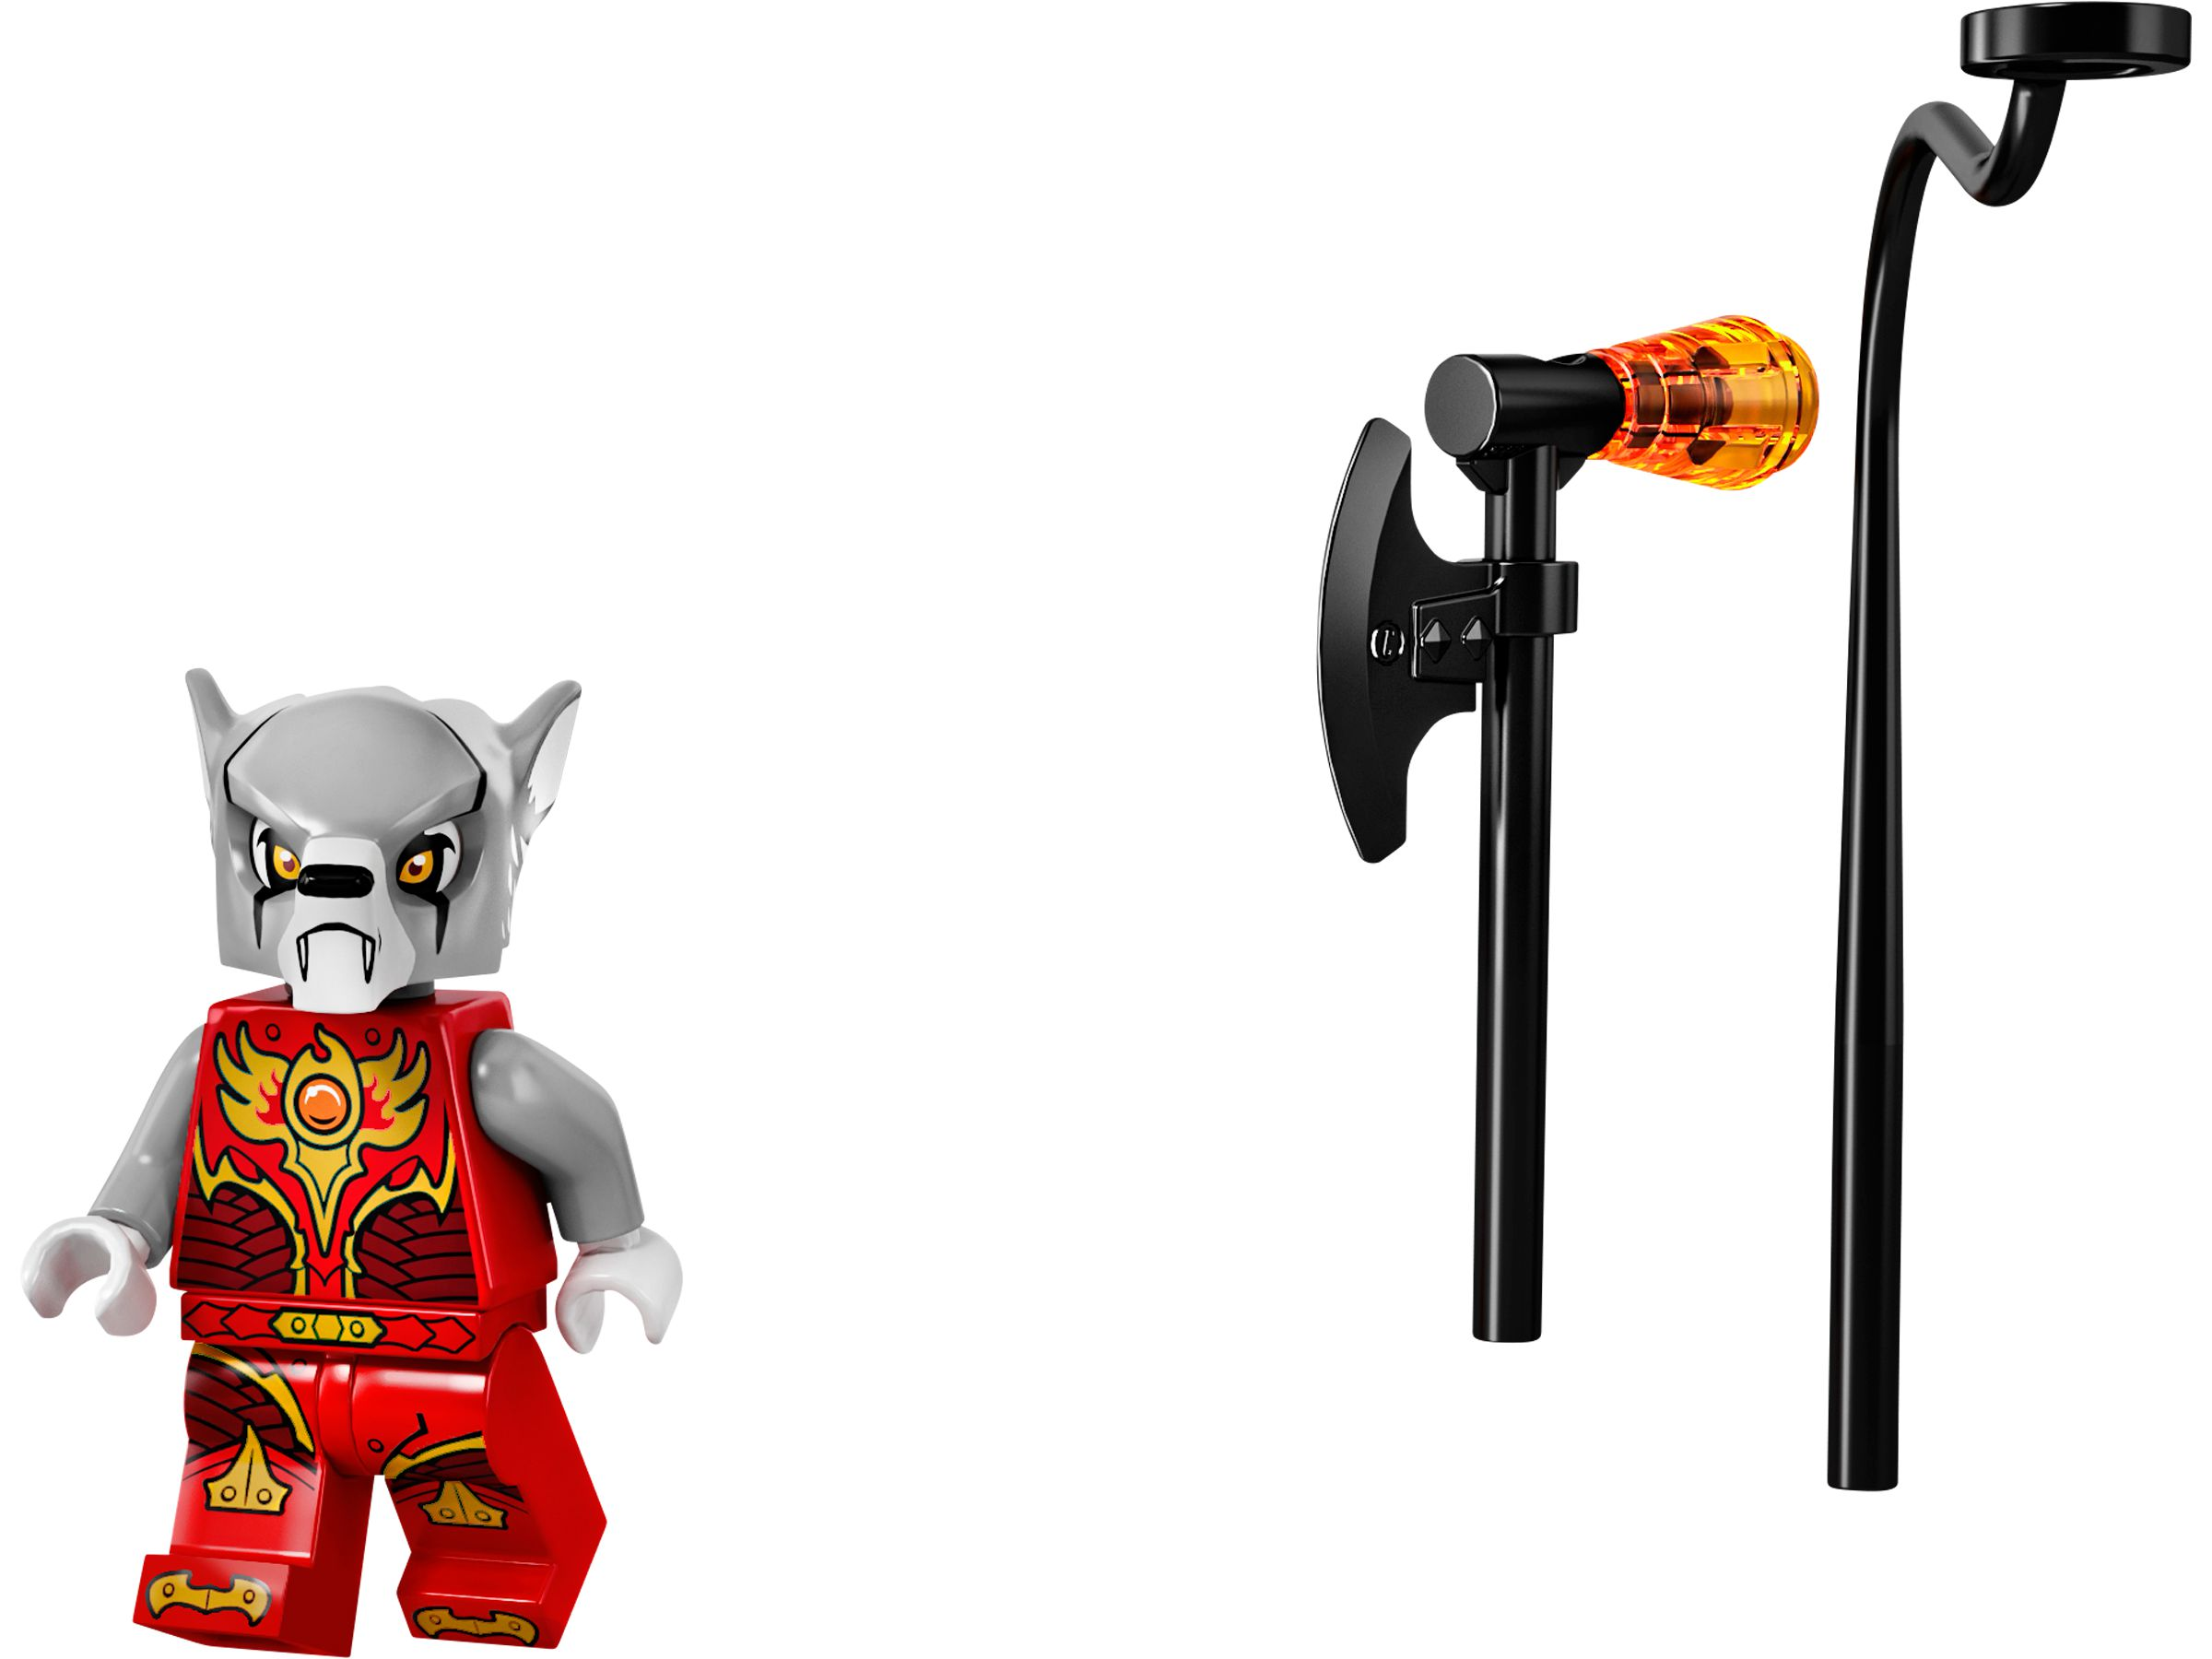 LEGO Legends Of Chima 70149 Feuer-Klingen LEGO_70149_alt2.jpg